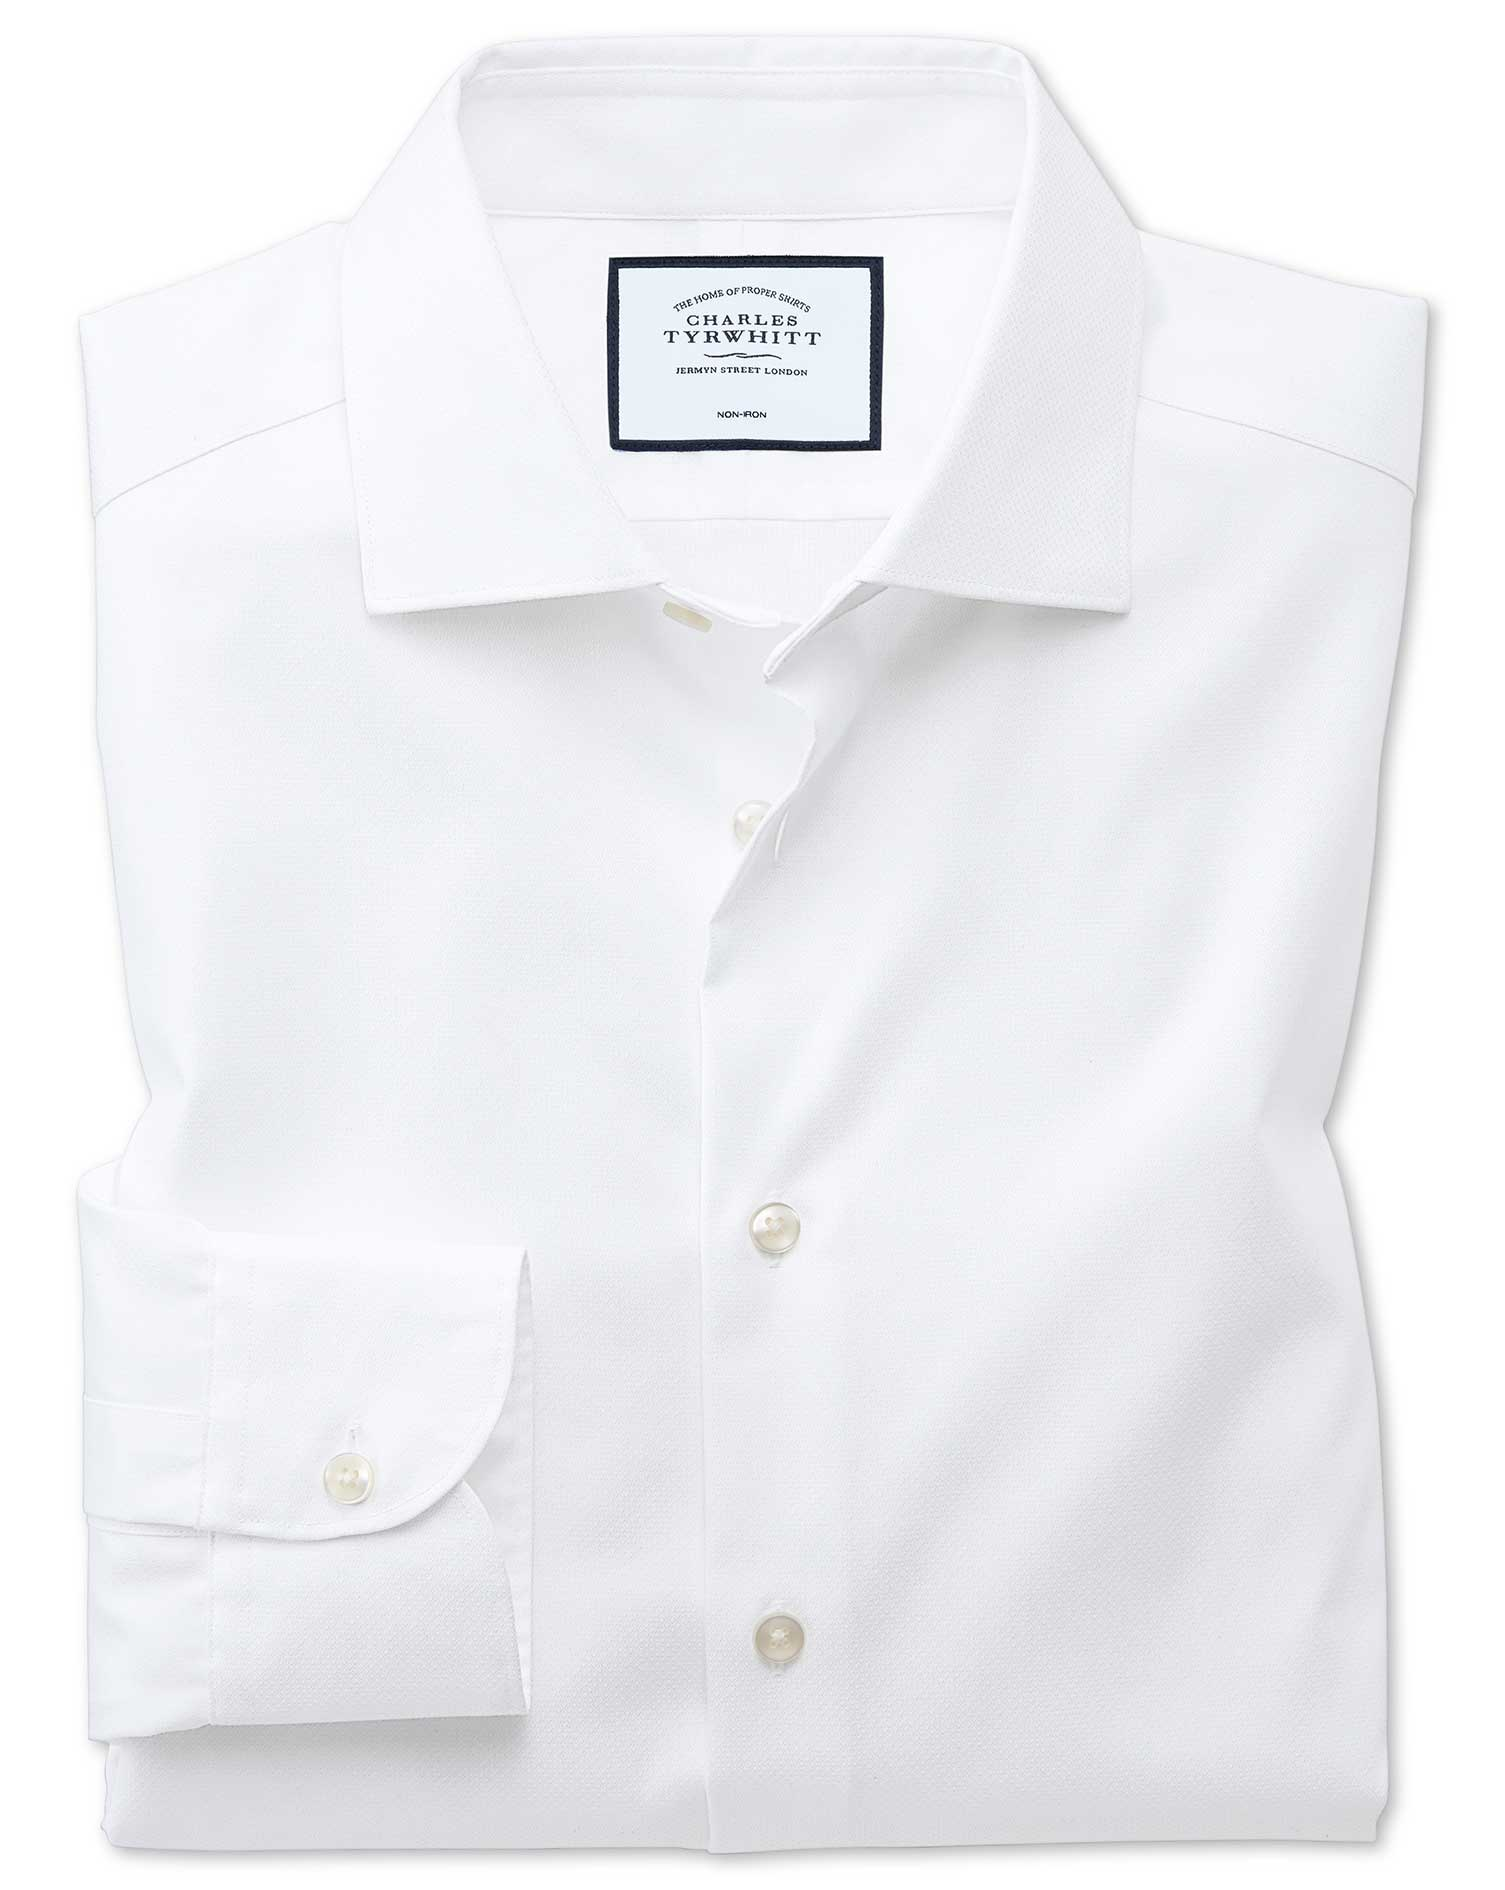 1482f3a8f6e4 Classic Fit Business Casual Non-Iron Modern Textures White Cotton Formal  Shirt Single Cuff Size